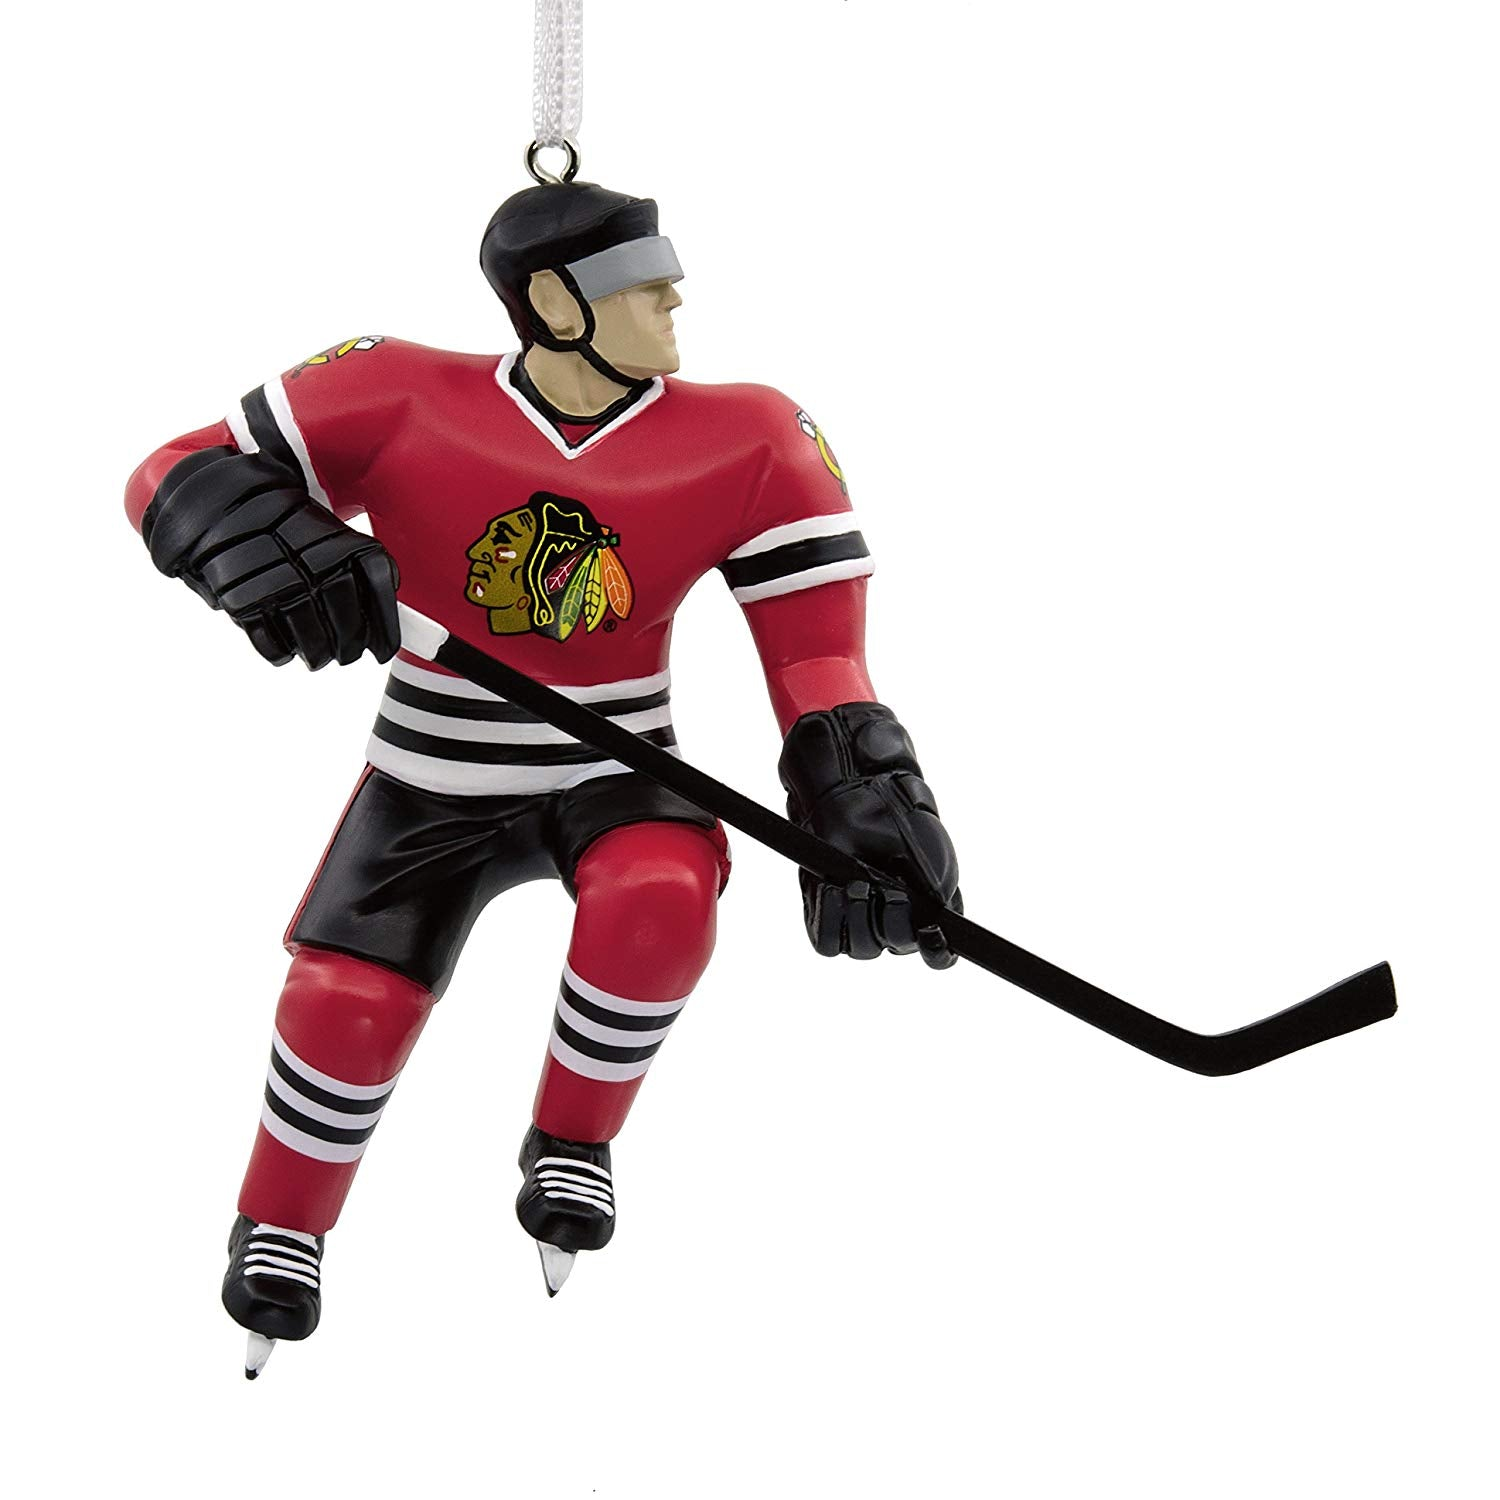 NHL Chicago Blackhawks Hallmark Ornament